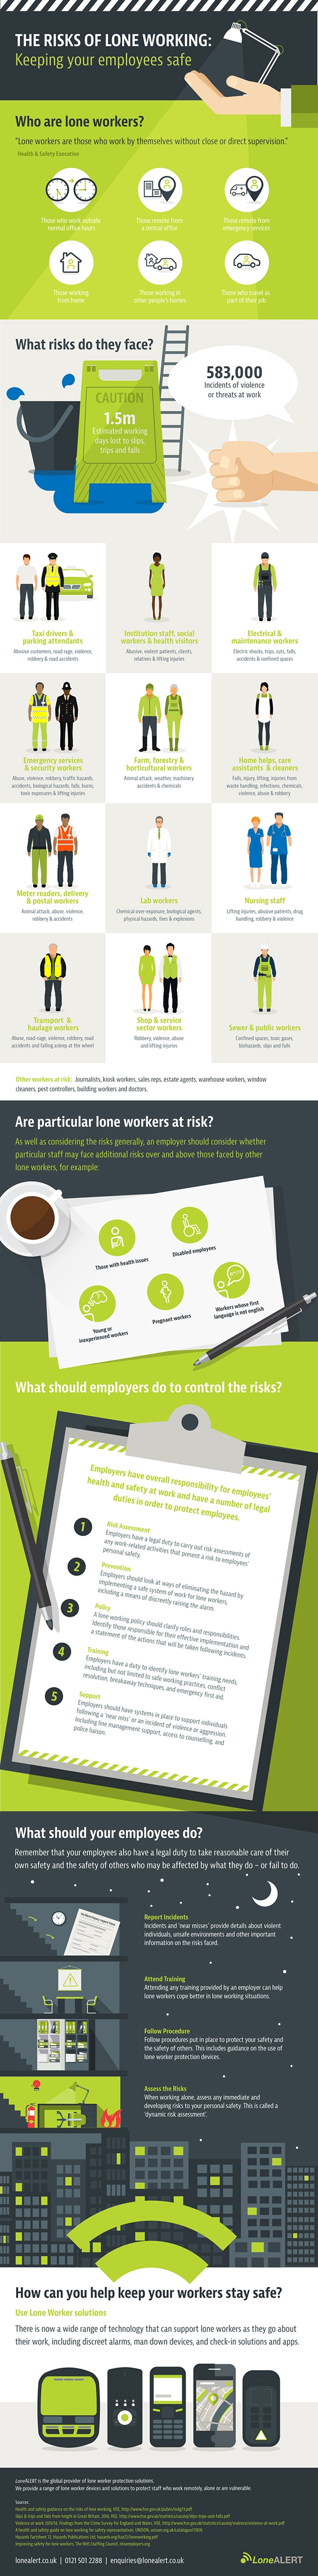 Lone Worker Protection from LONEALERT - The risks of lone working - Infographic